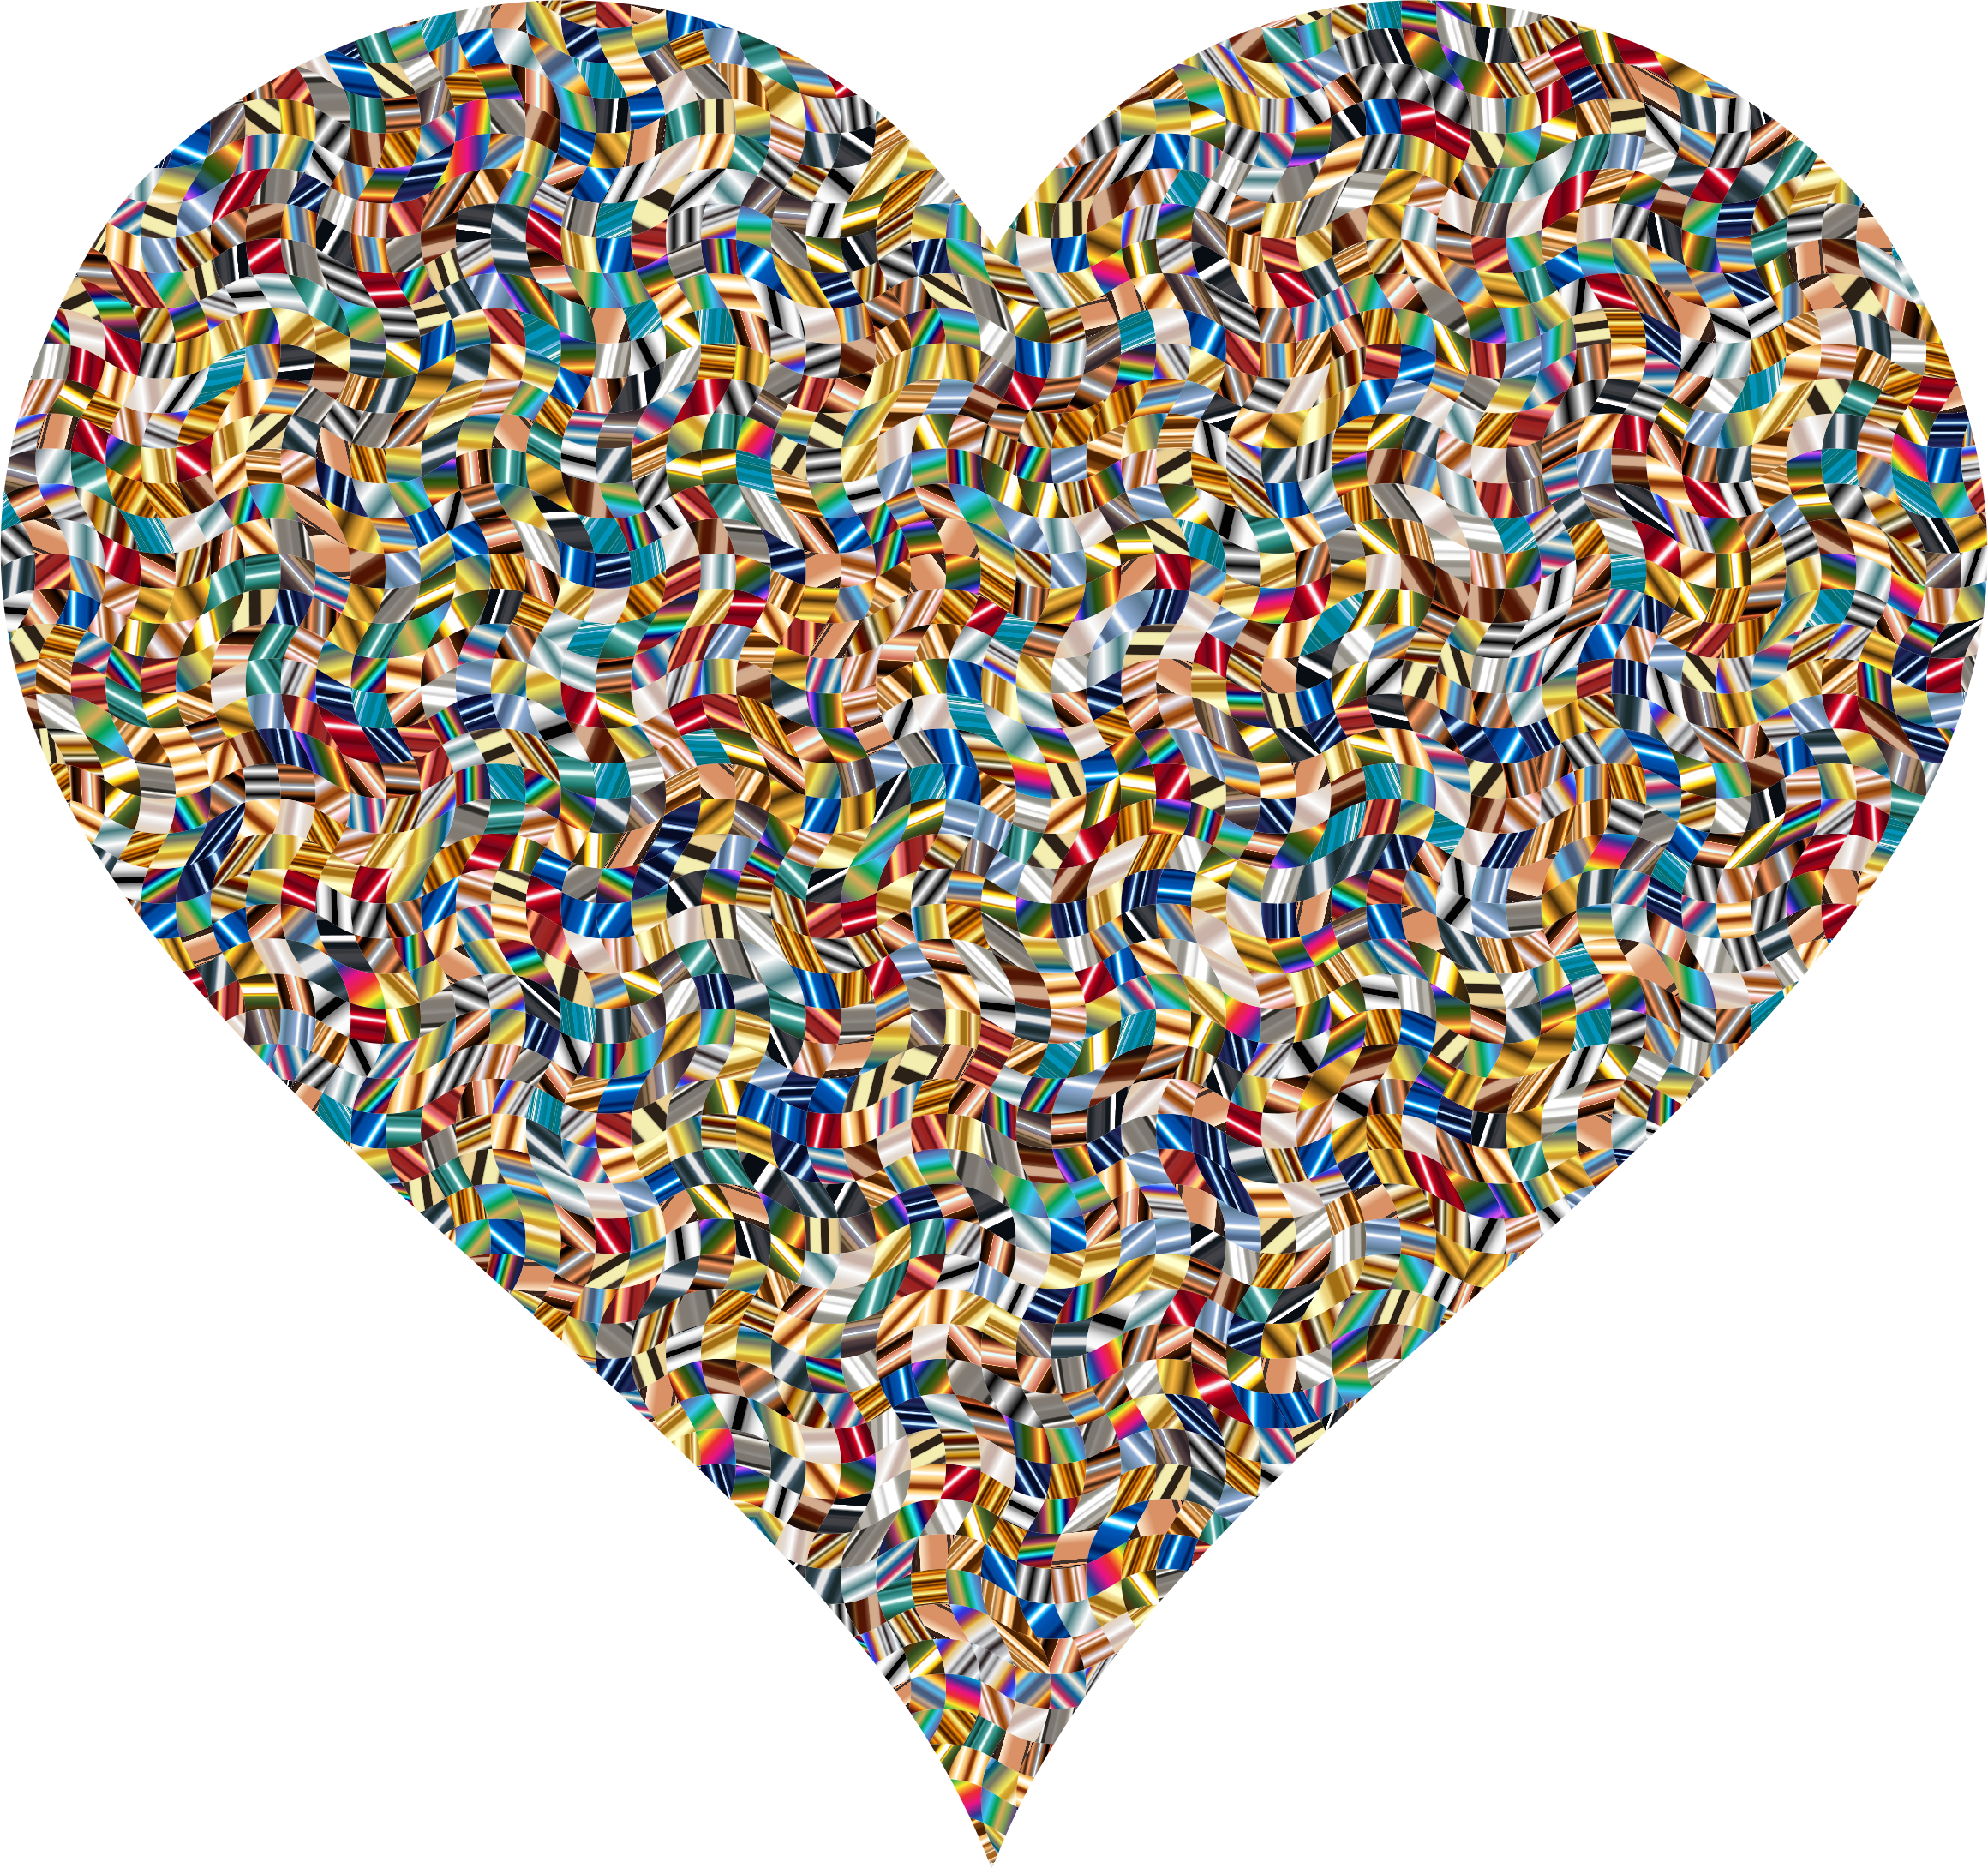 Colorful Confetti Heart 5 Variation 2 by GDJ